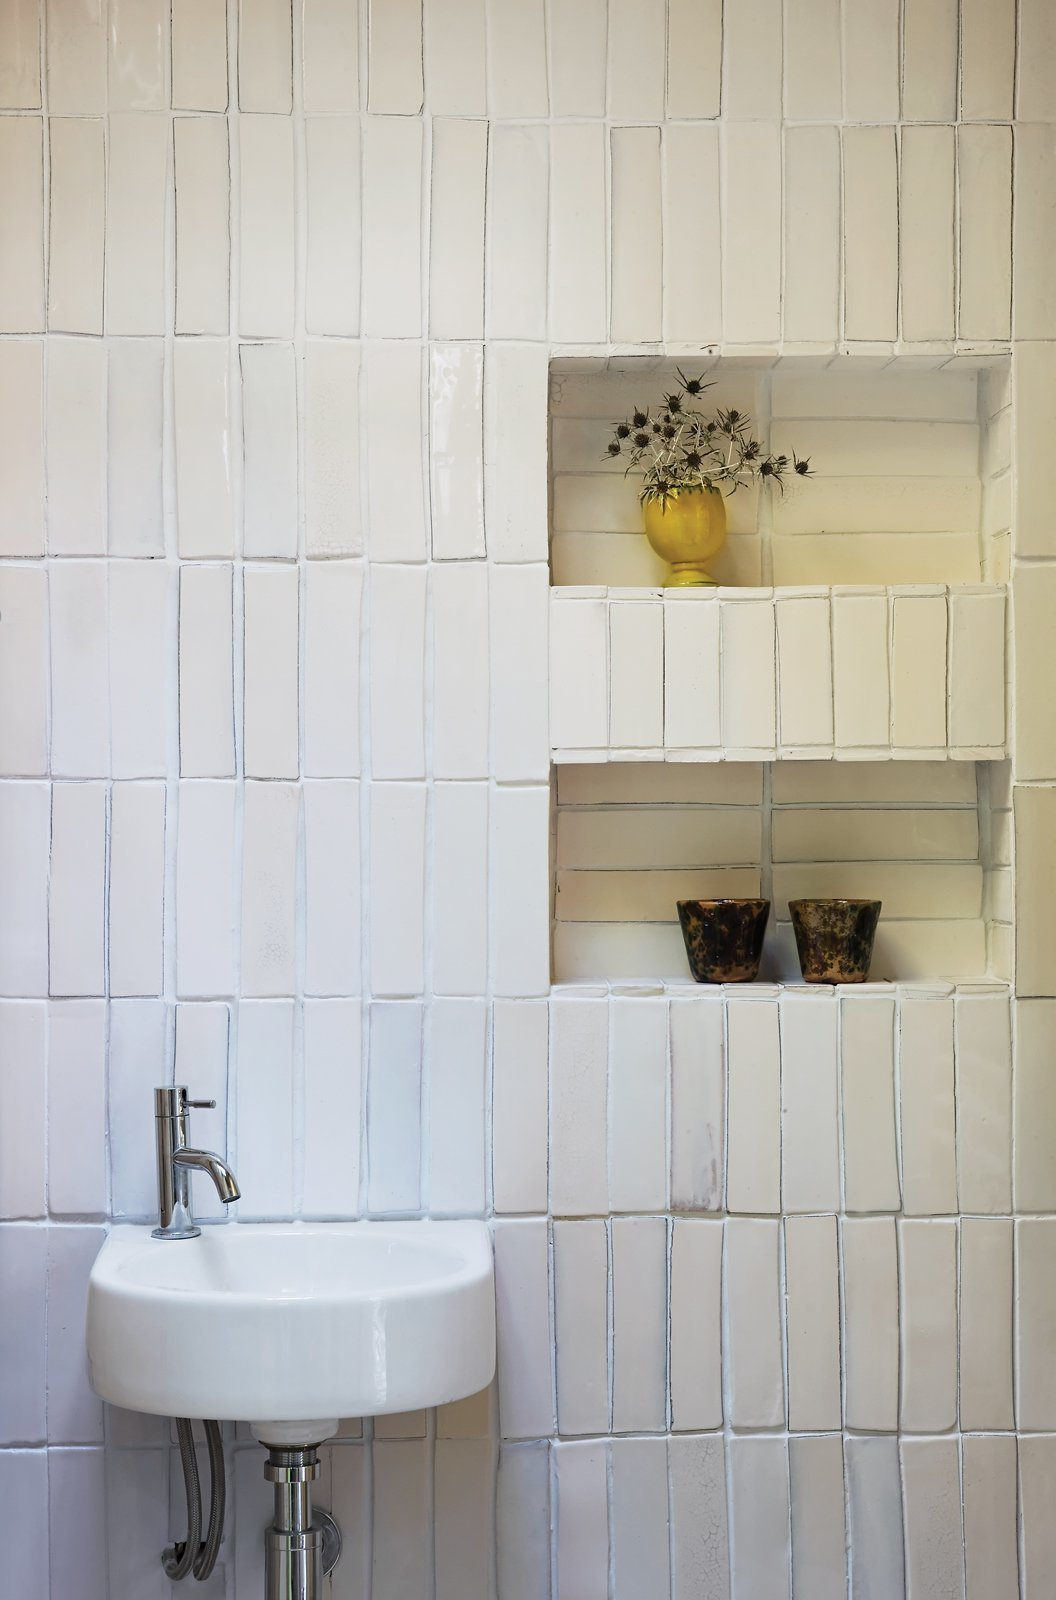 Bath Room and Wall Mount Sink If you don't have to have cabinetry installed or shelves drilled onto your bathroom walls, one good idea is to create recessed wall shelves for storage. This will help conserve floor space. You can even create recessed wall in corners.  Photo 6 of 8 in 8 Bathroom Storage Hacks You Probably Haven't Tried Yet